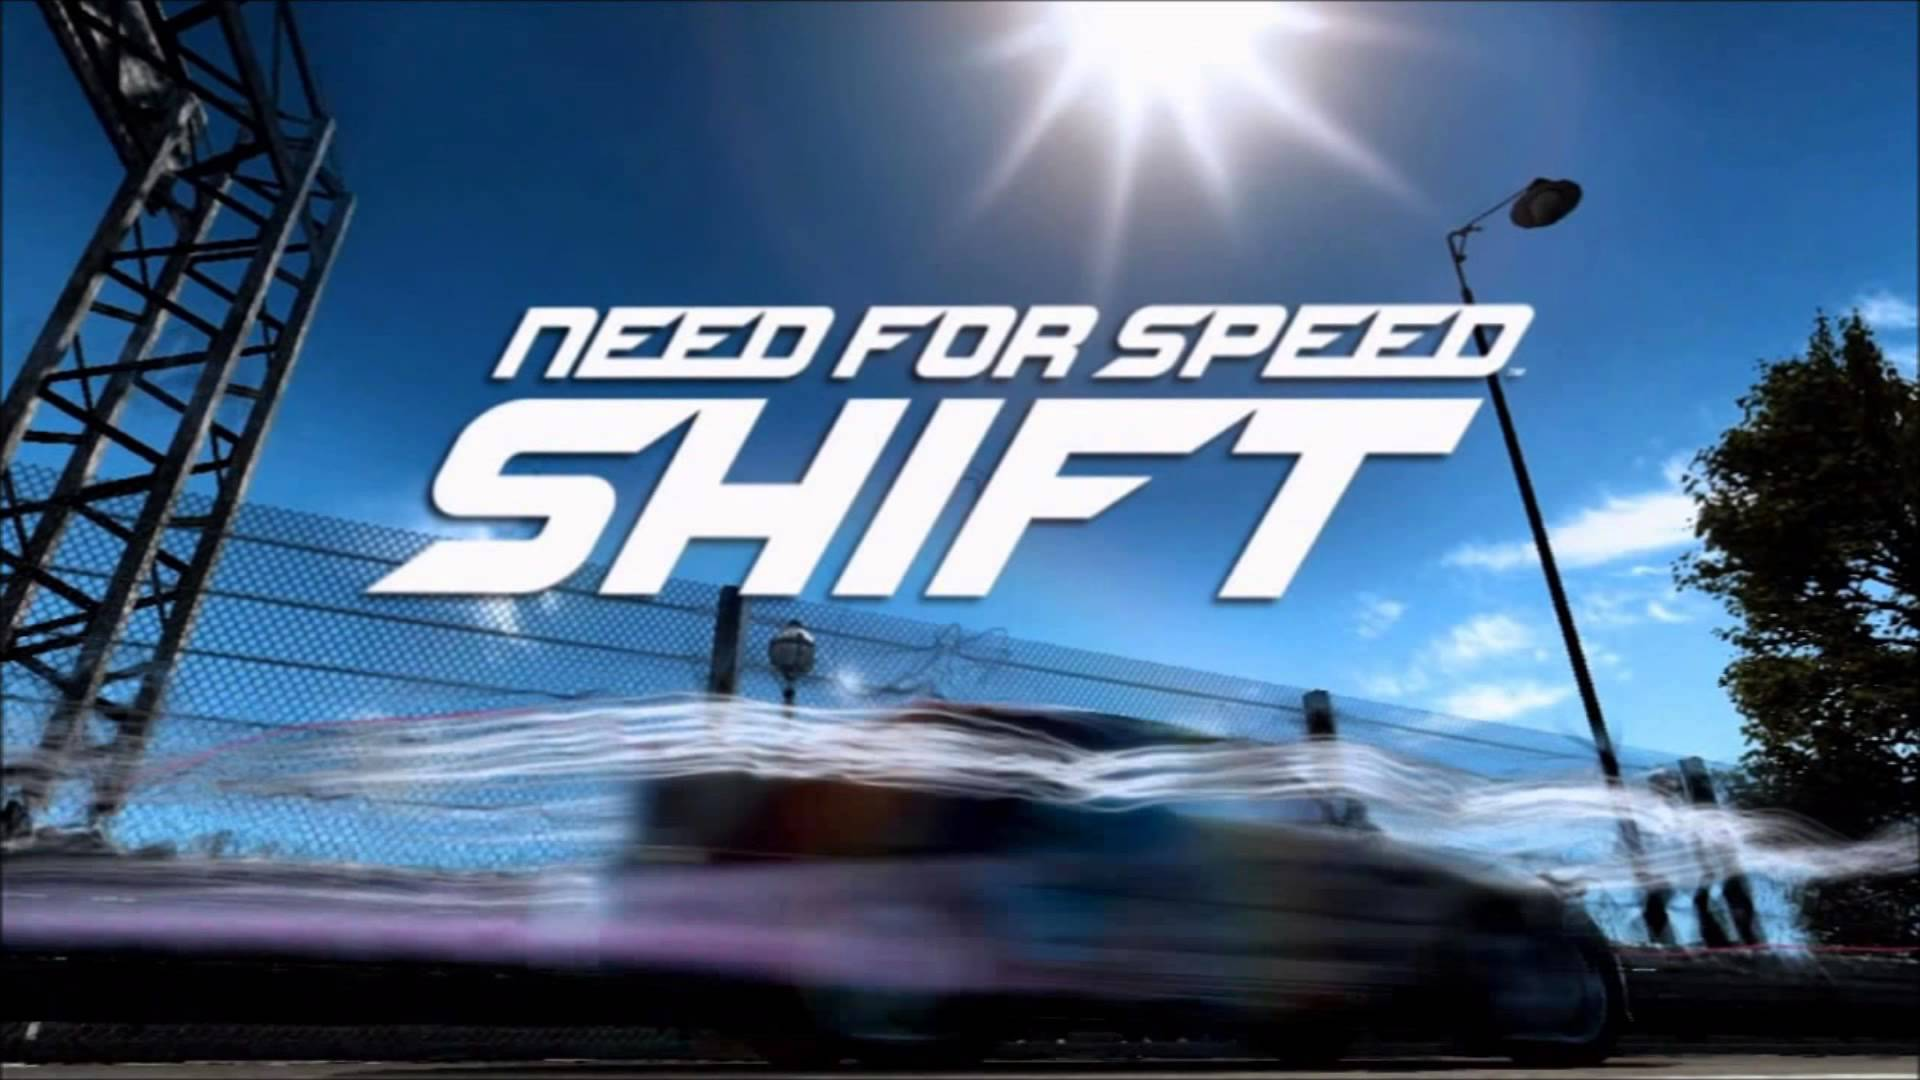 Need for Speed Shift wallpaper 4